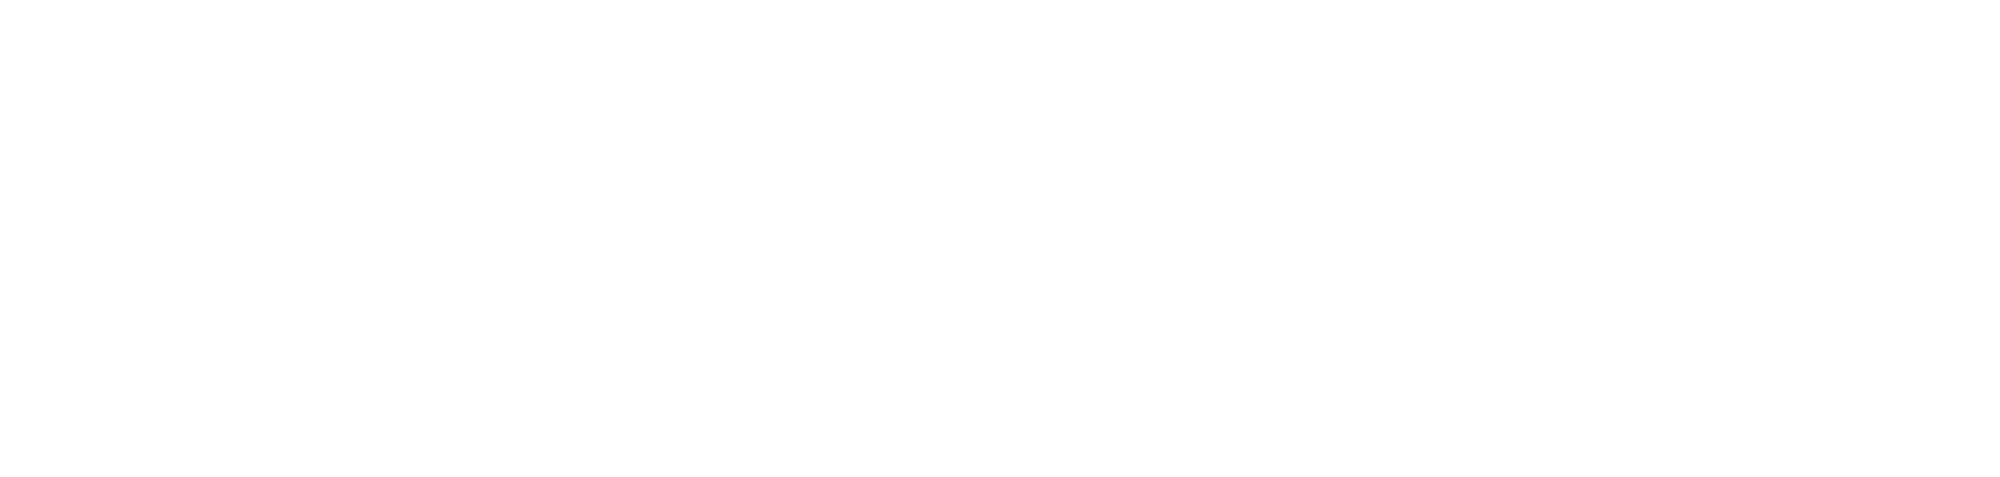 Western States Conference on Suicide-logo-white.png